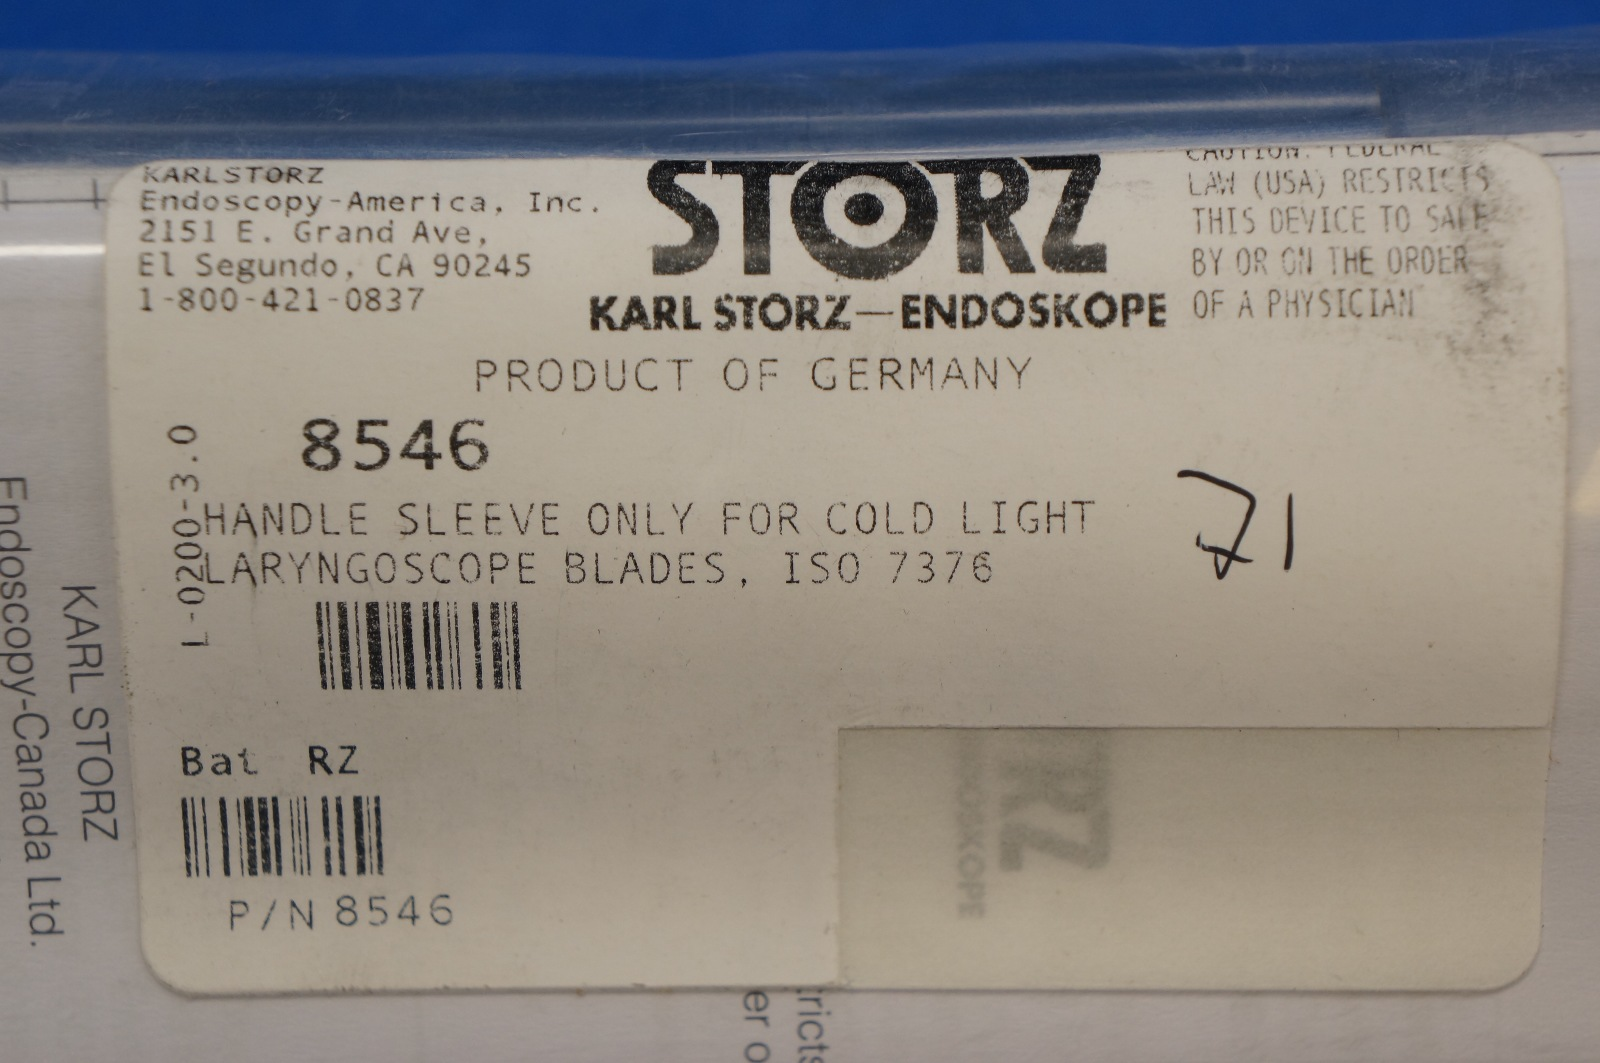 Karl Storz 8546 Handle Sleeve Only For Cold Light Laryngoscope Blade, ISO  7376